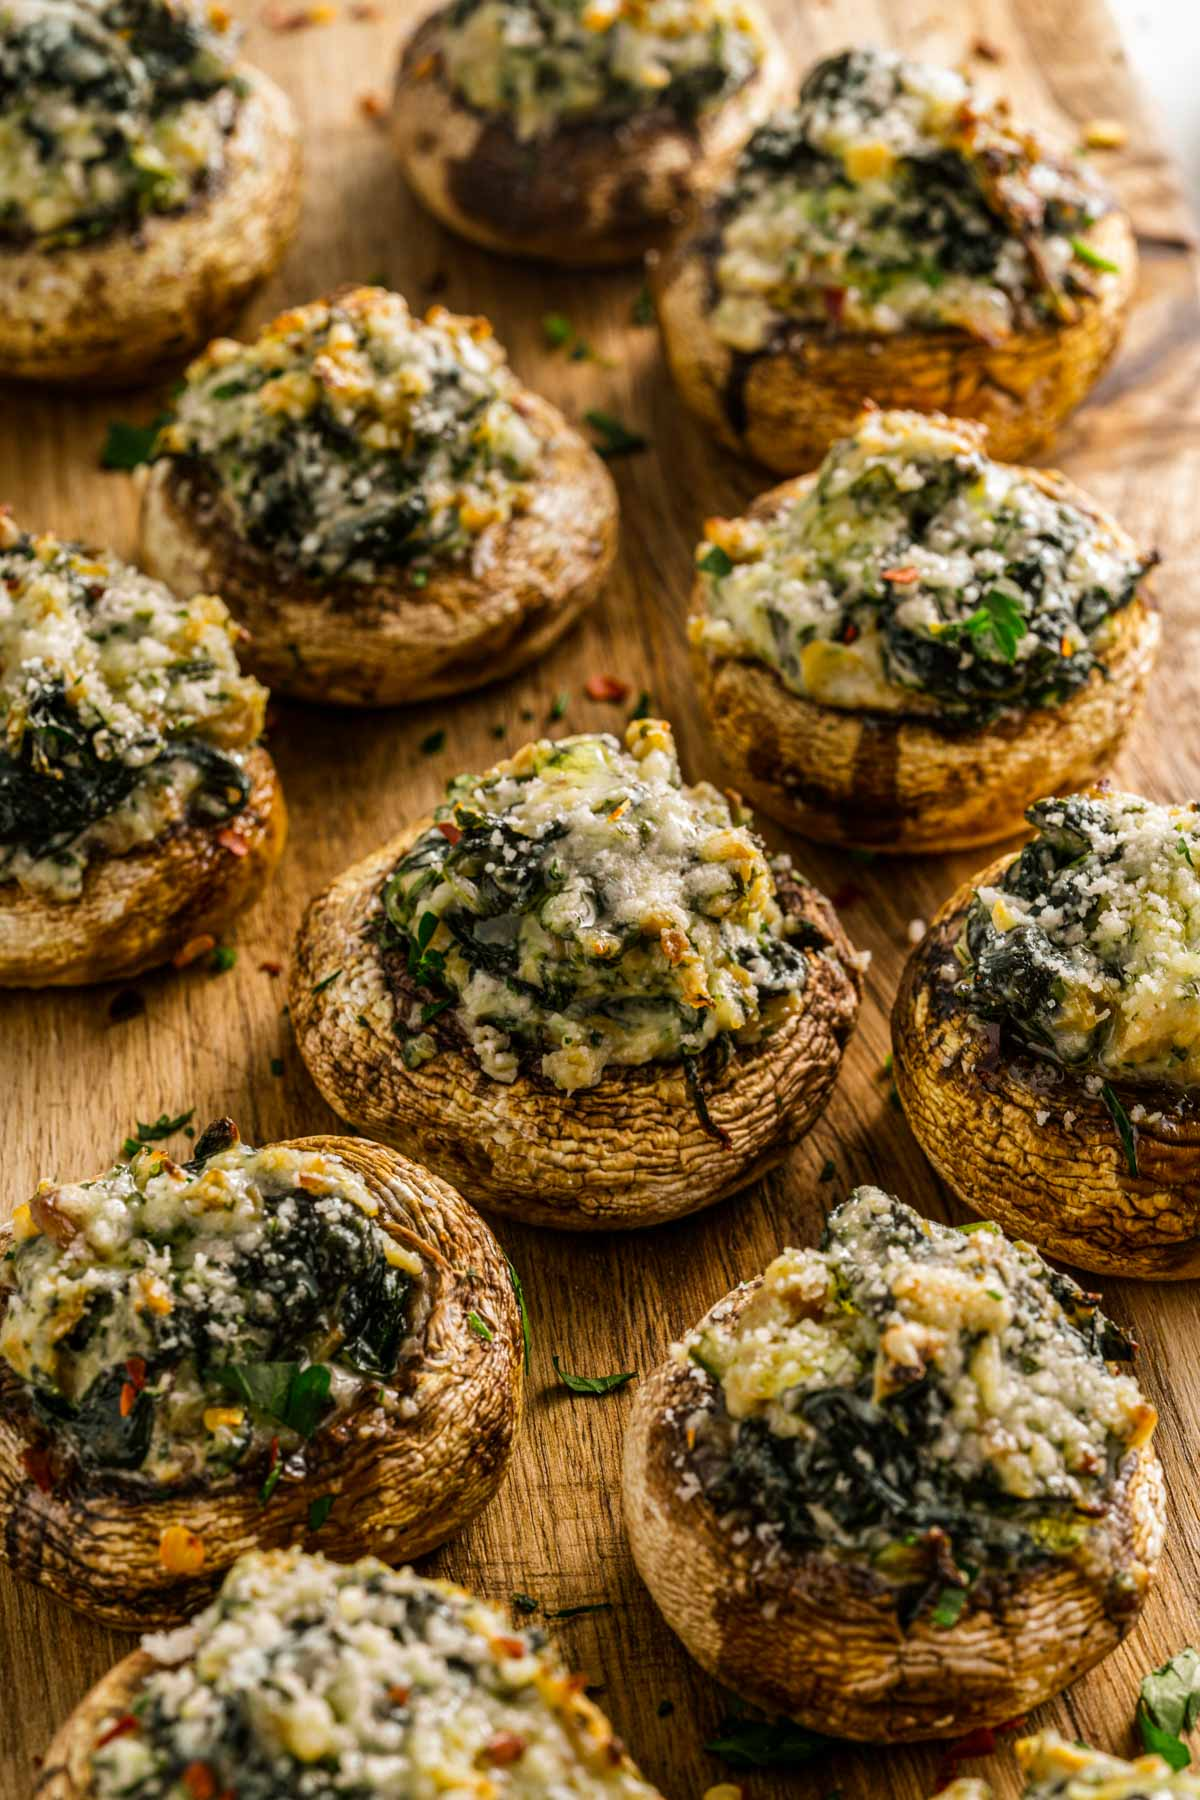 seasoned mushrooms with parsley and spices